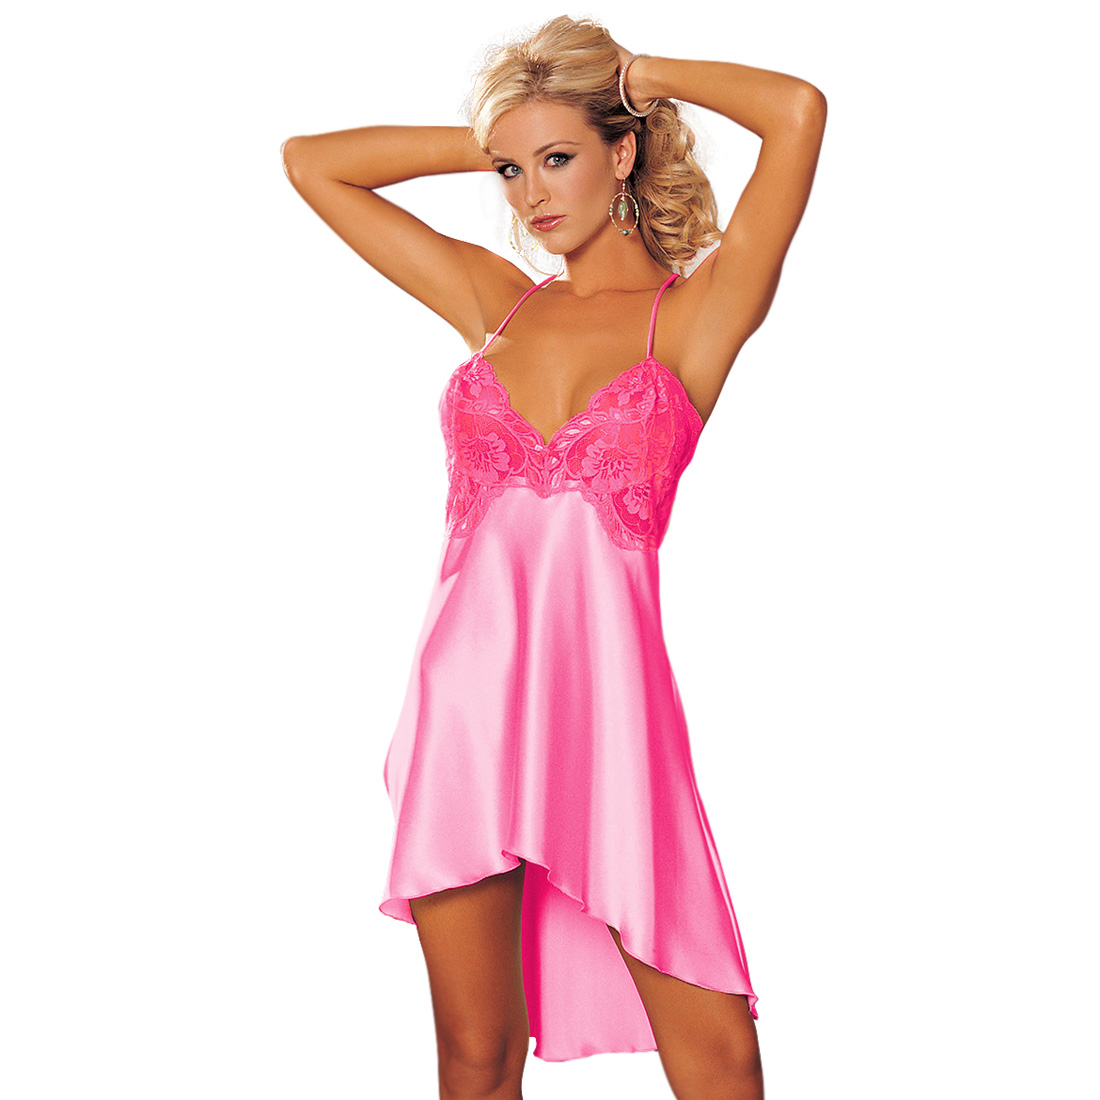 Womens Sexy Lingerie Night Gowns Dress Sleepwear Babydoll ...